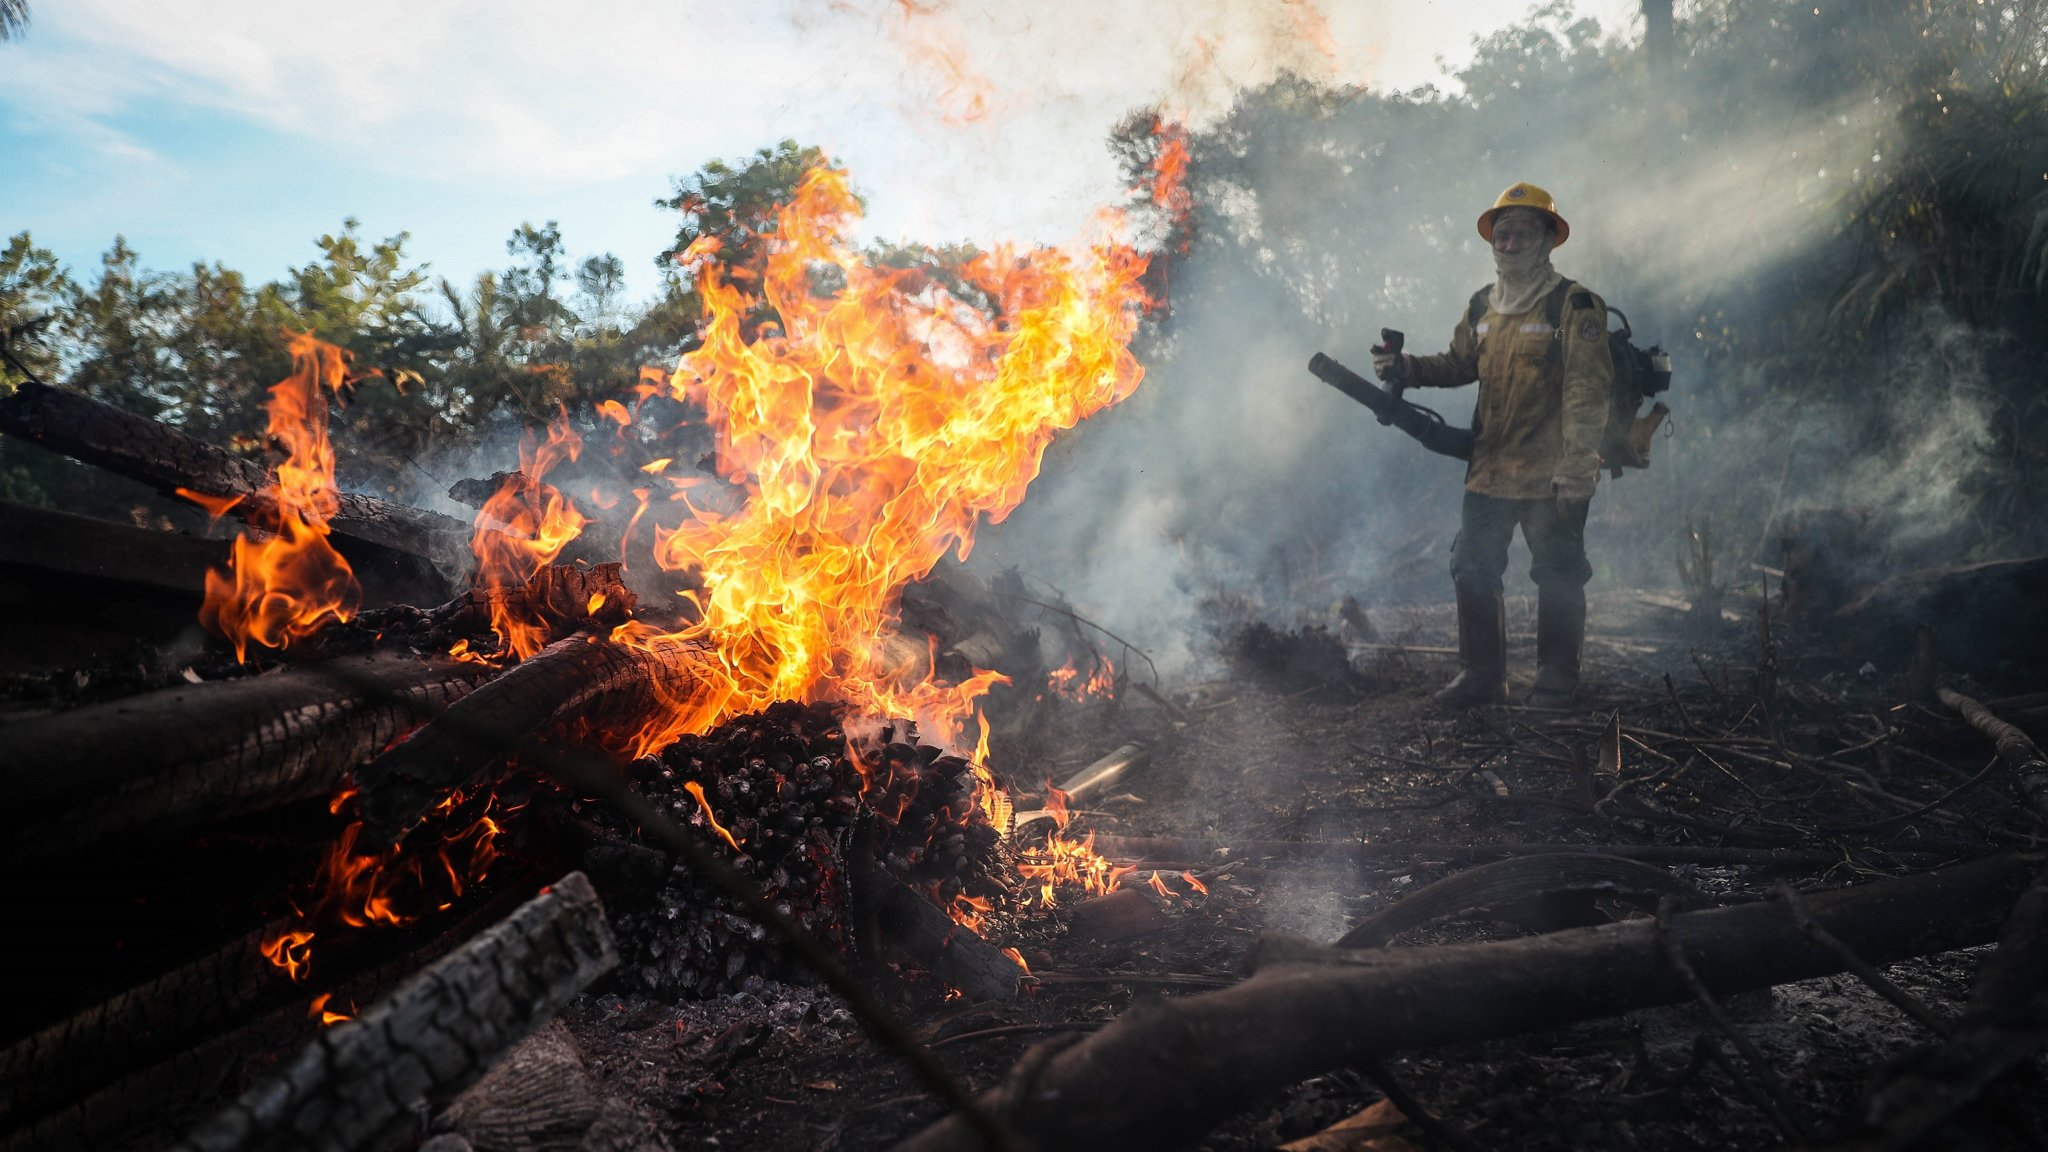 To stop the Amazon fires, rethink the development model